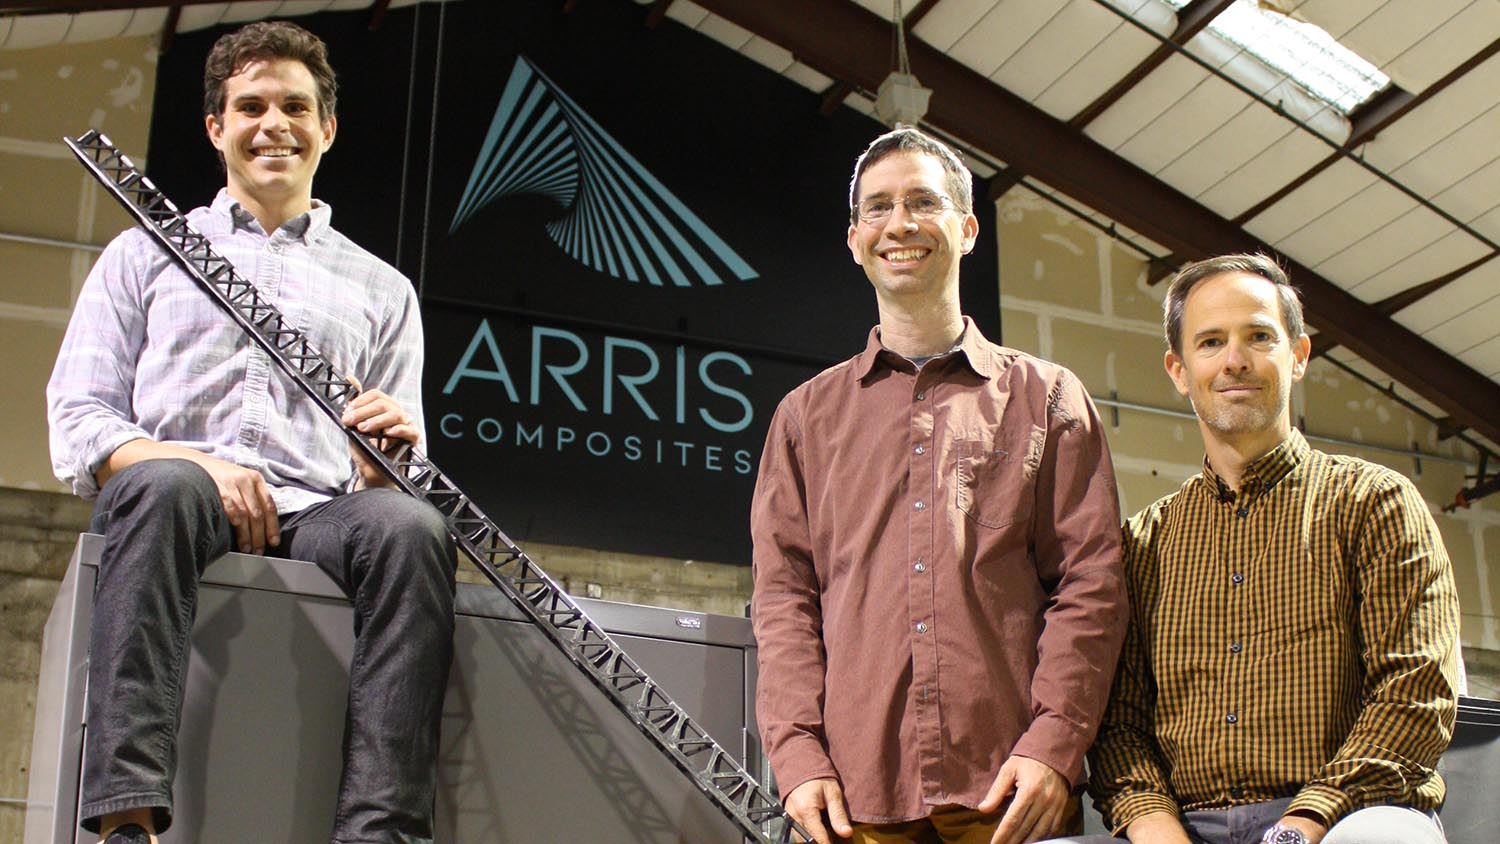 Arris composites Founders